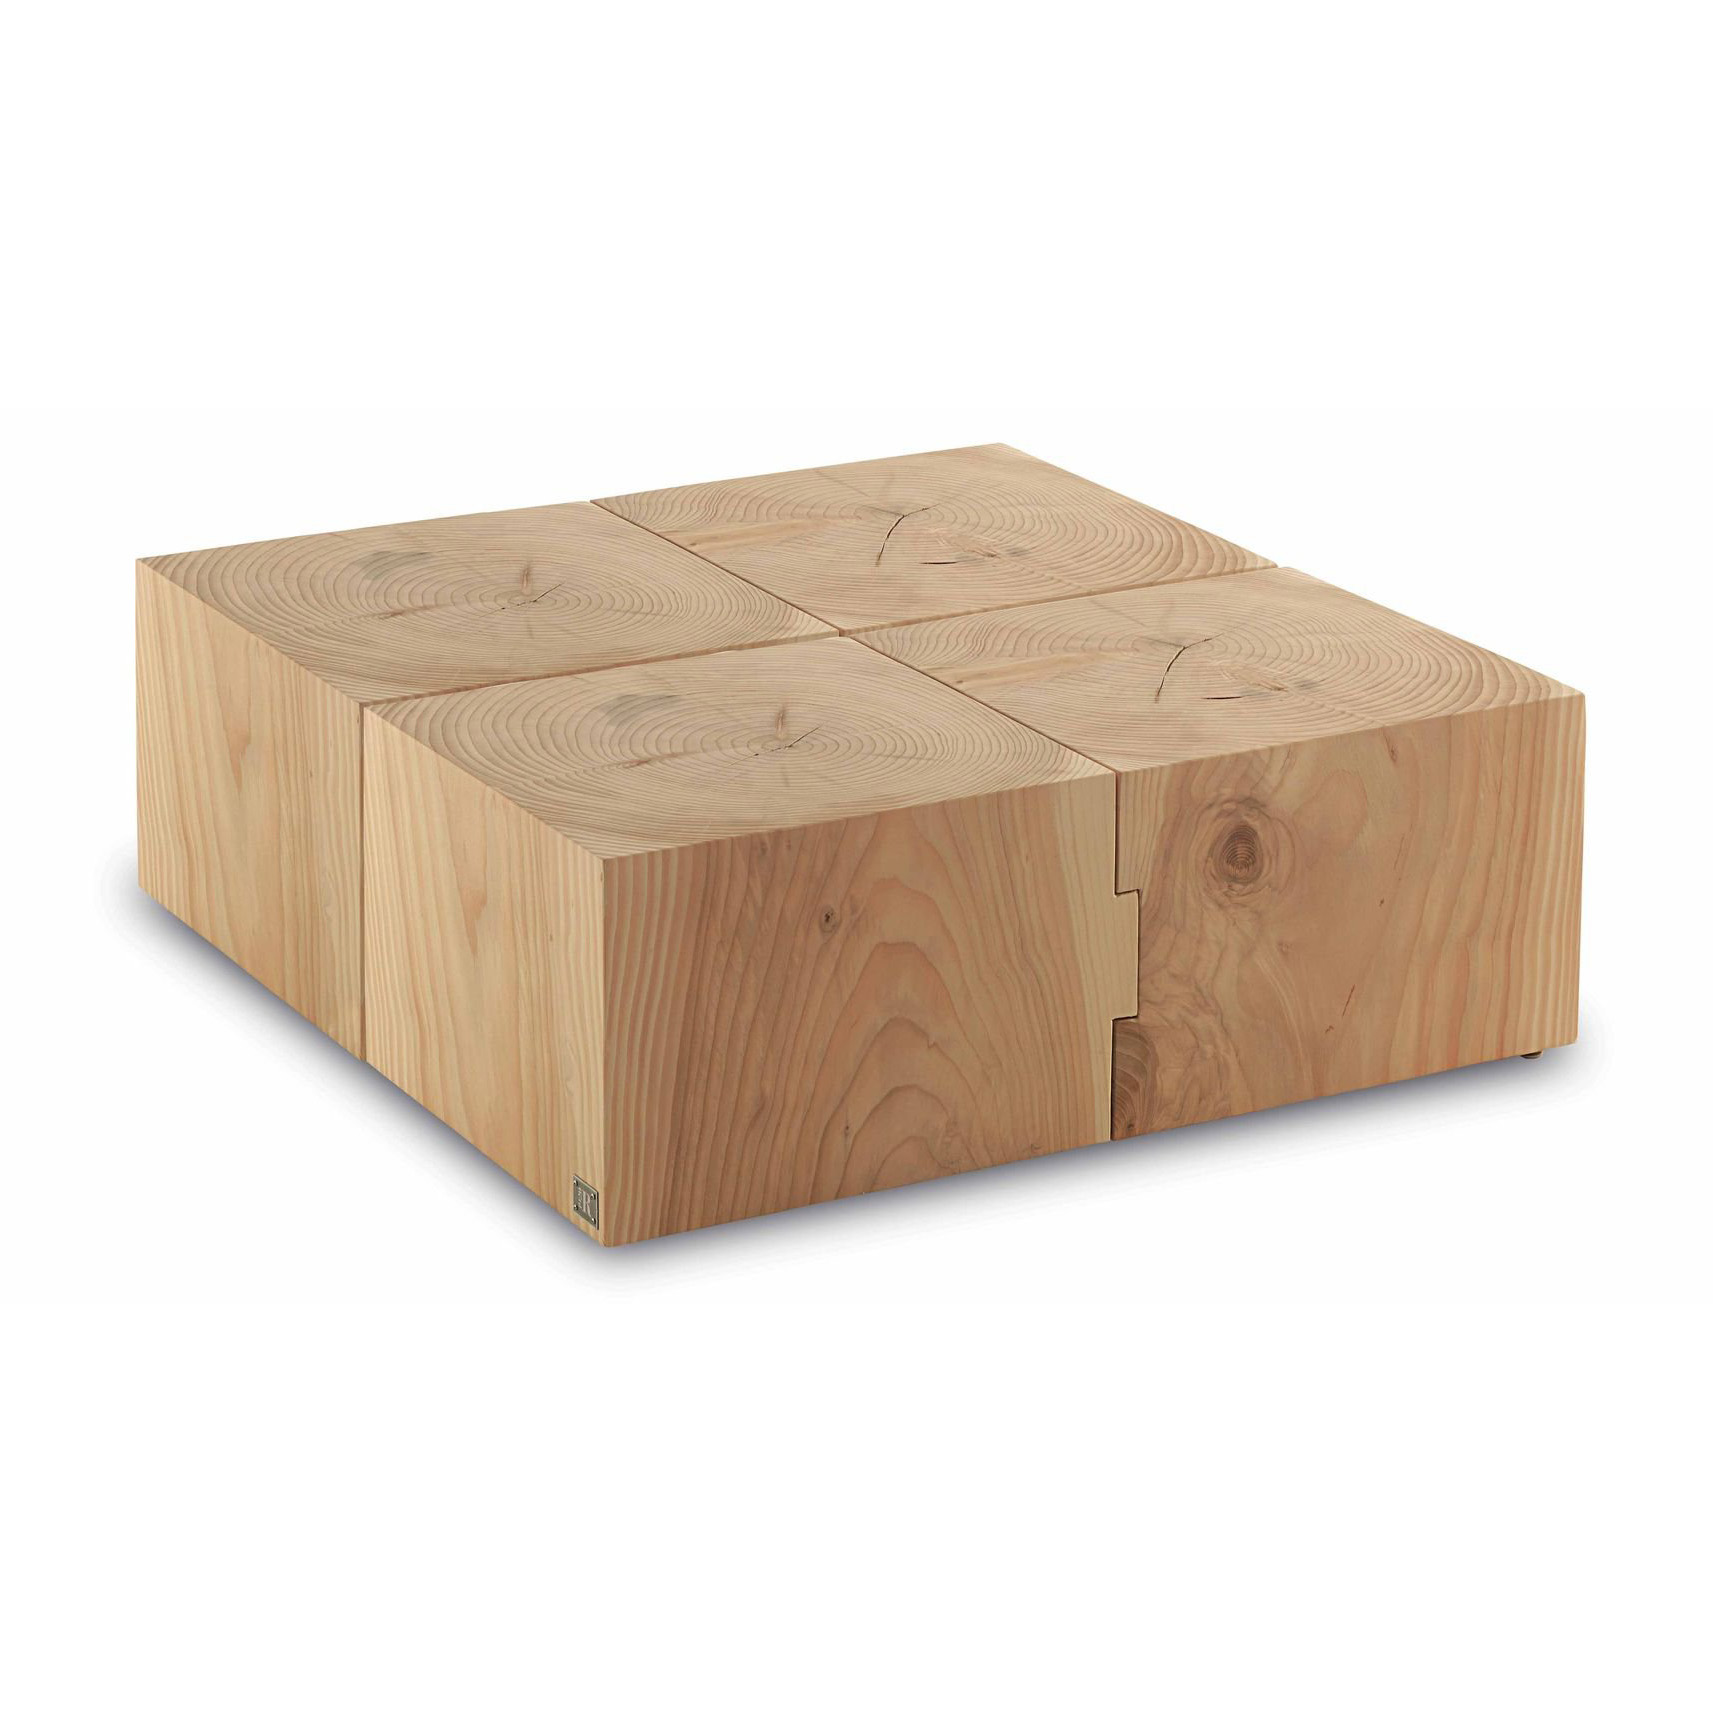 Riva 1920 Eco Block End Tables | Round Top | Rectangular Top | Wooden    Contemporary Furniture From Ultra Modern